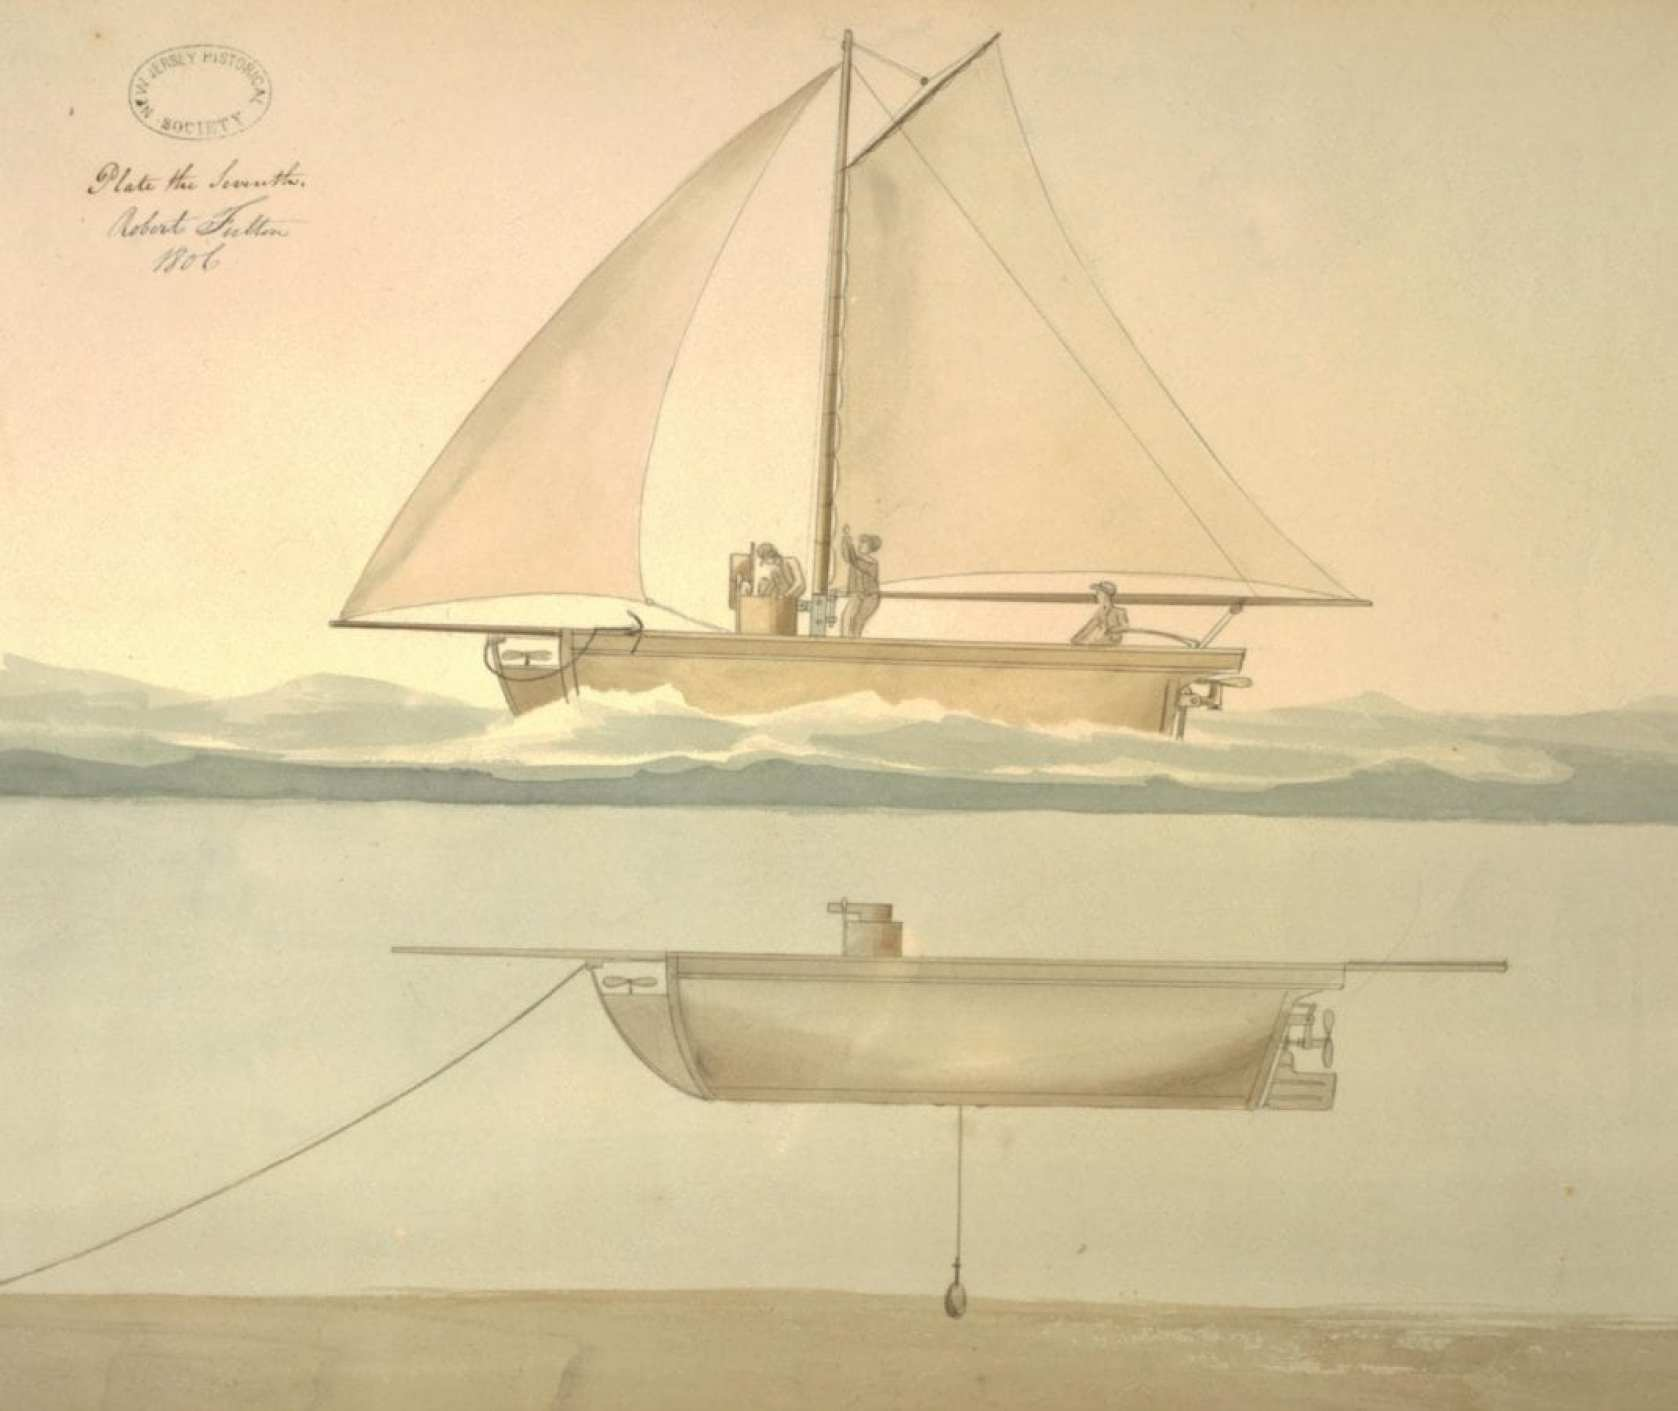 Fulton drawing from an 1806 submarine proposal rejected by the U.S. government.